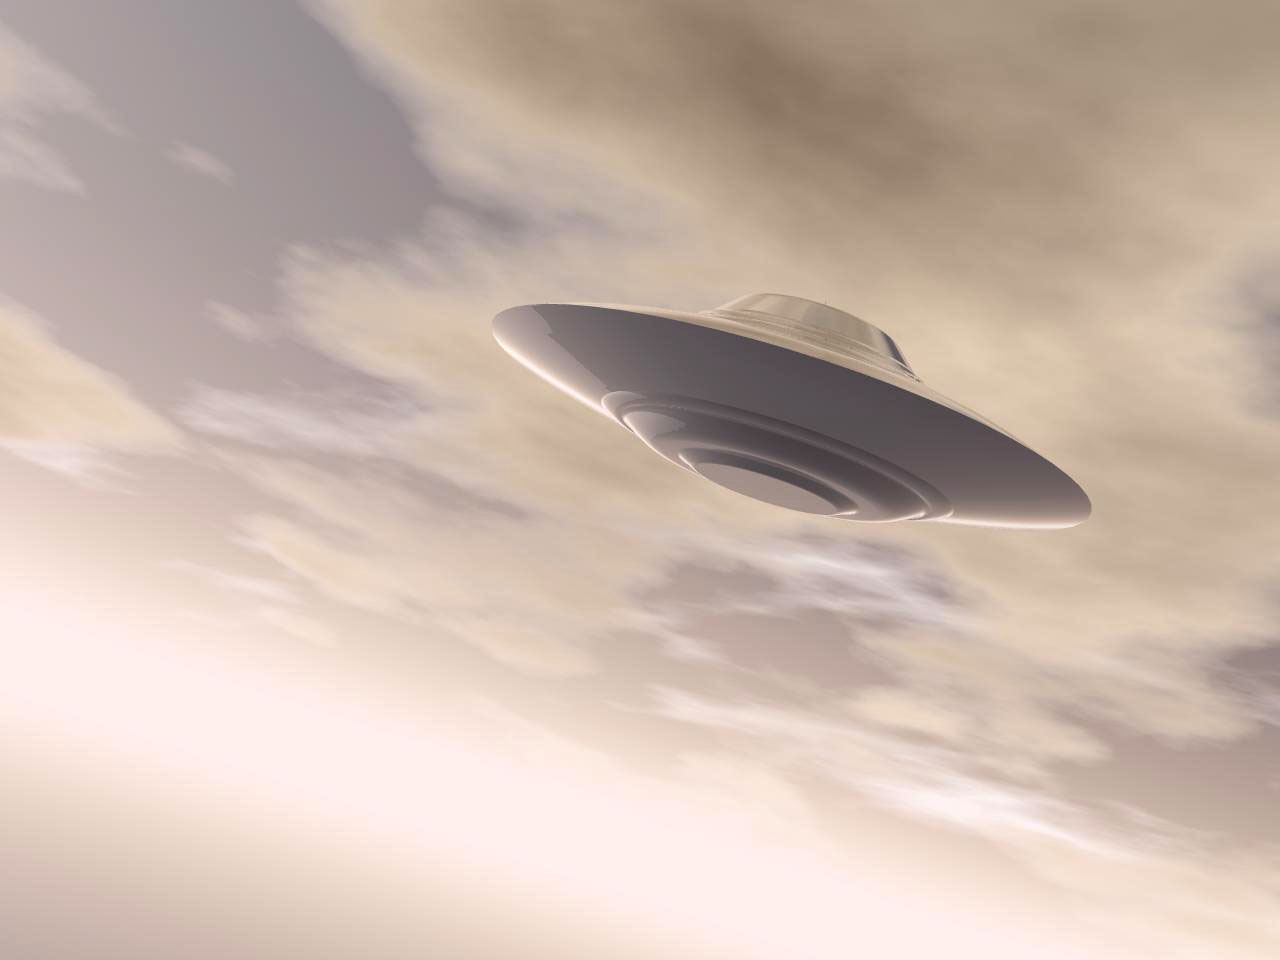 Ufo spotted in us after russian meteor strike